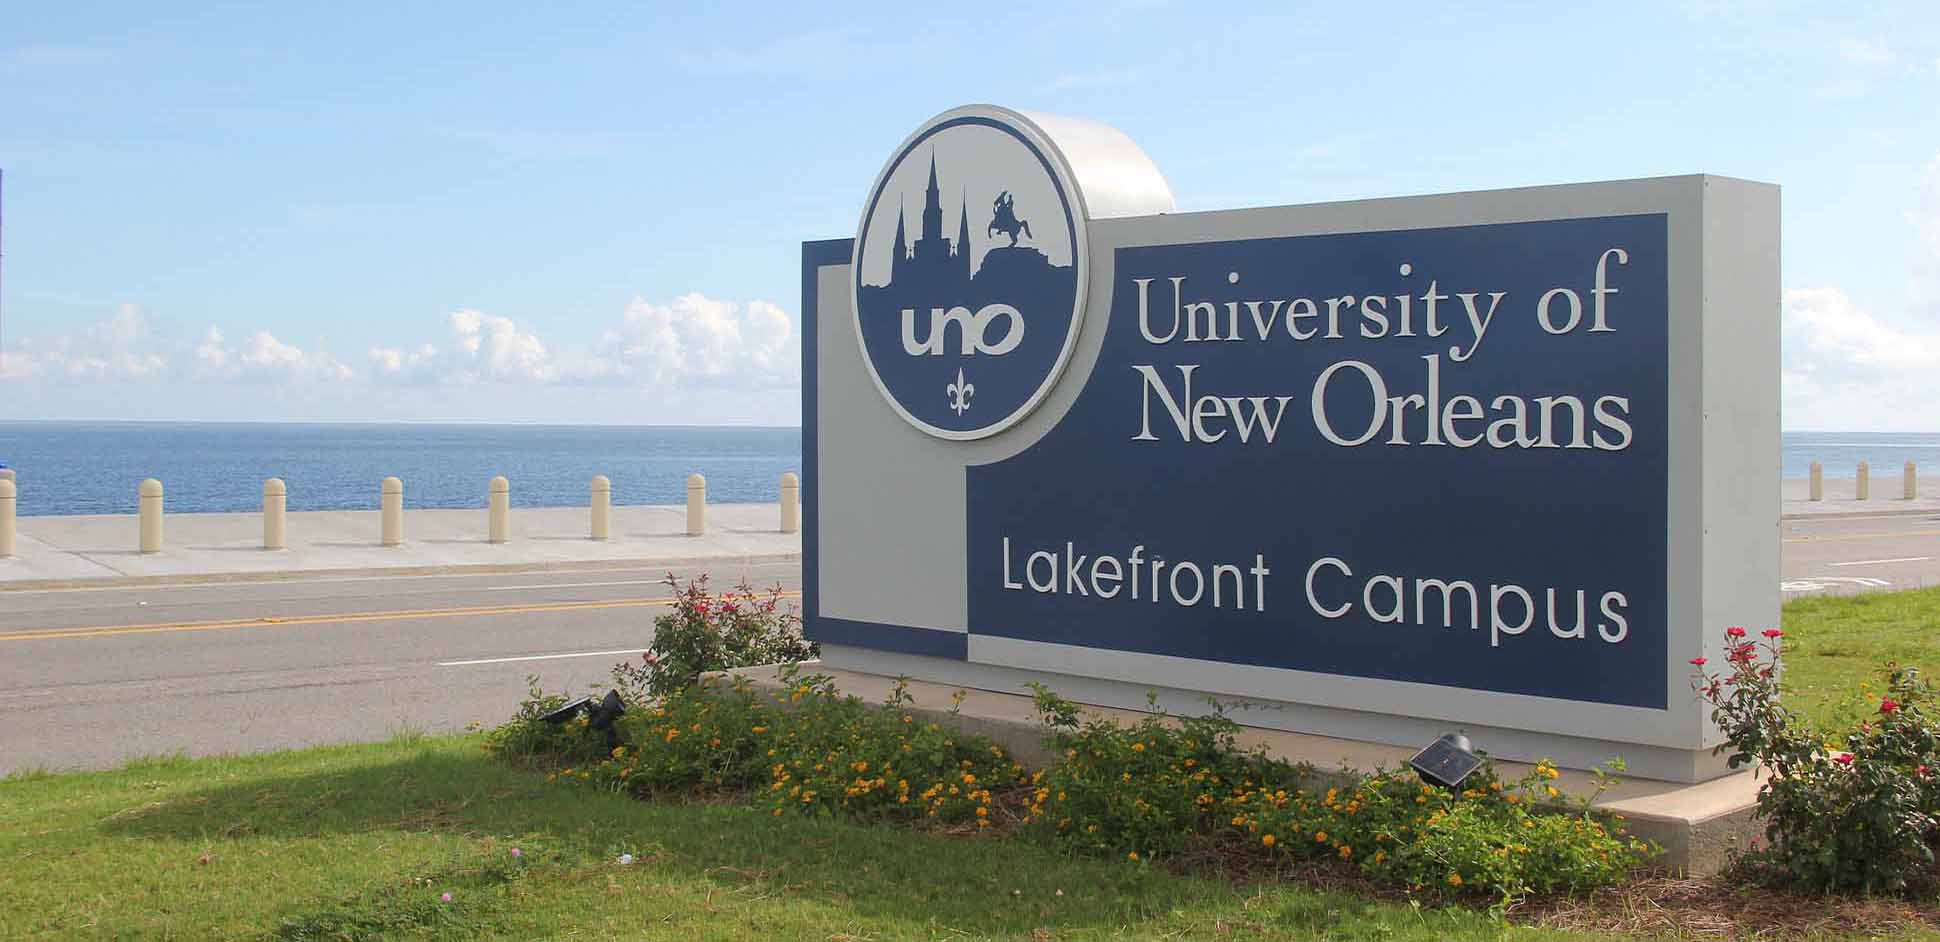 10 Library Resources at University of New Orleans